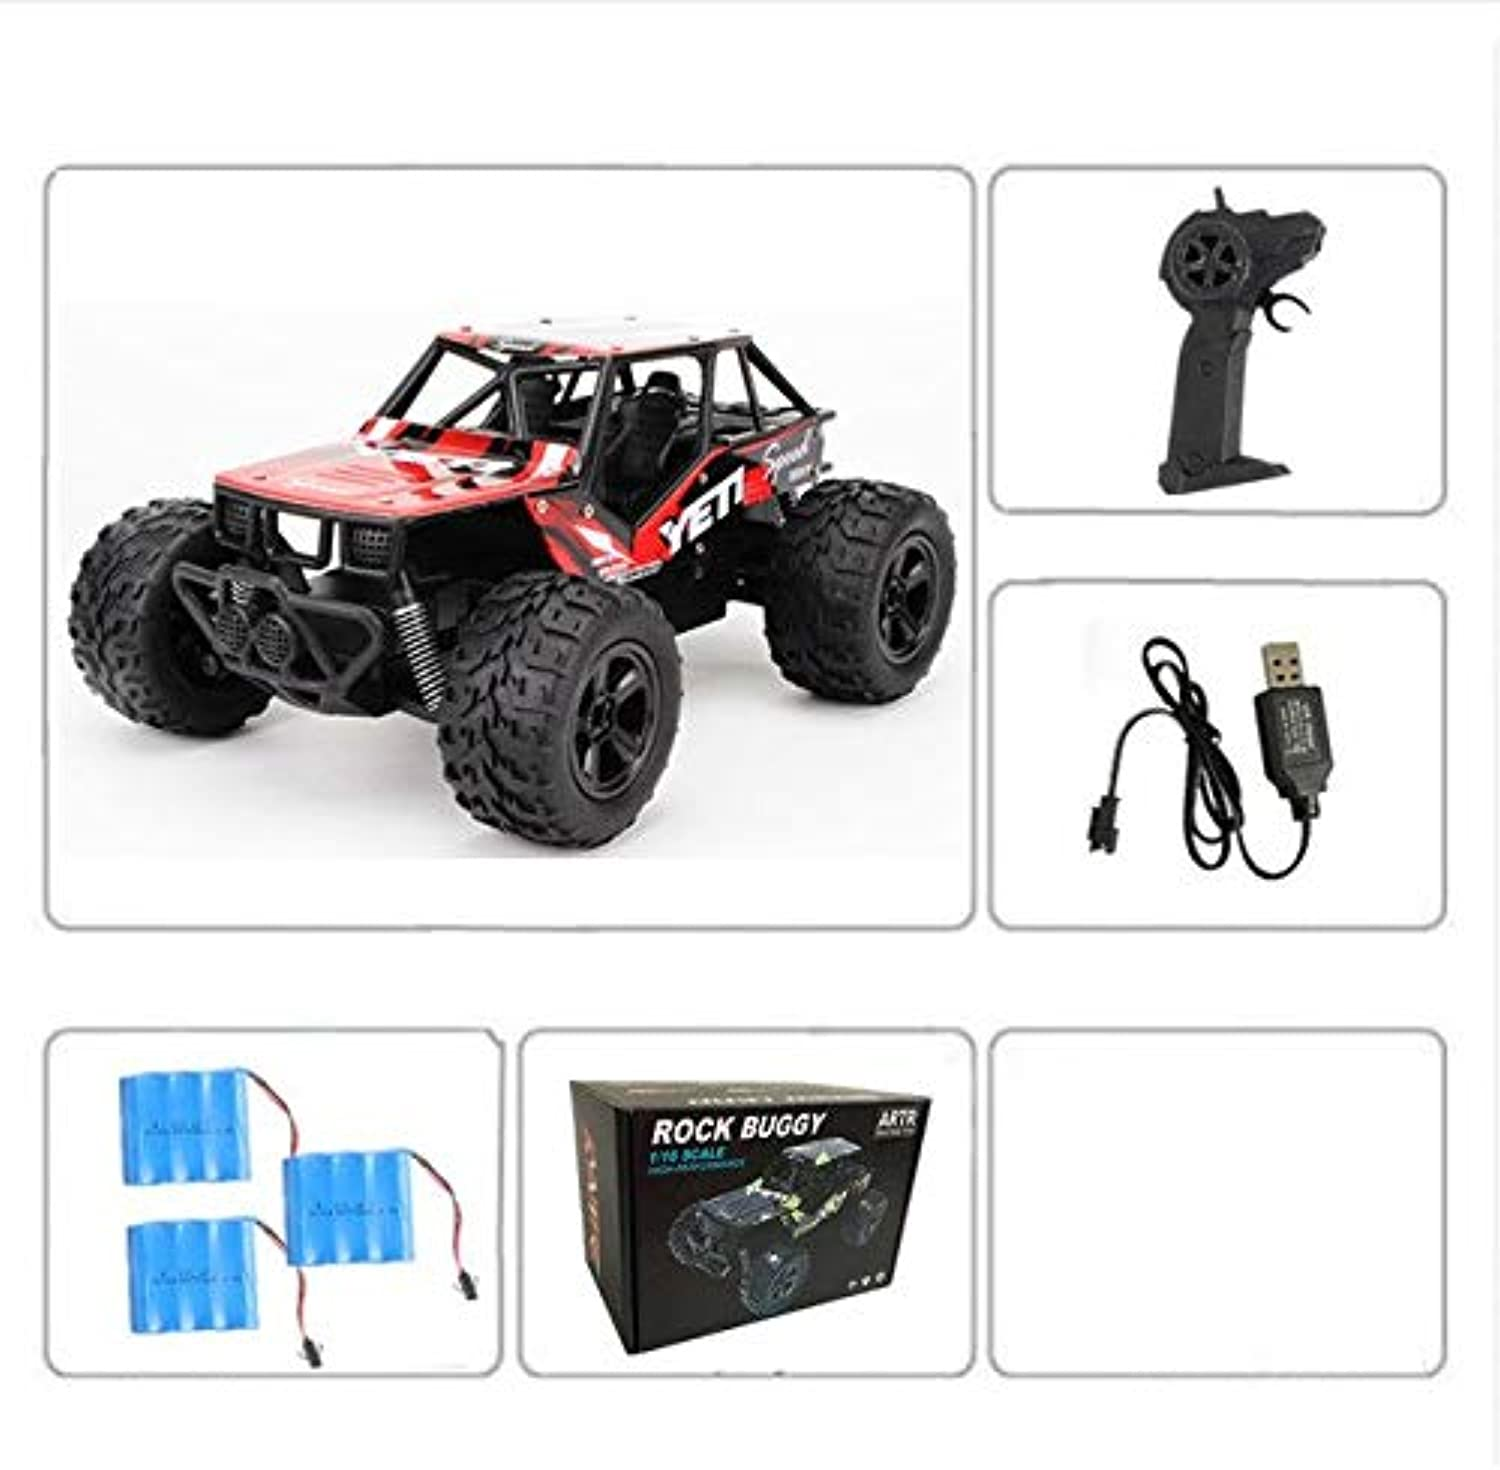 Generic RC Car Remote Control Car 1 20 RC Military Truck Mini OffRoad Car with Light RTR 4WD DIY Car Kit 1 20 RC Toy Gift VS WPL B1 12